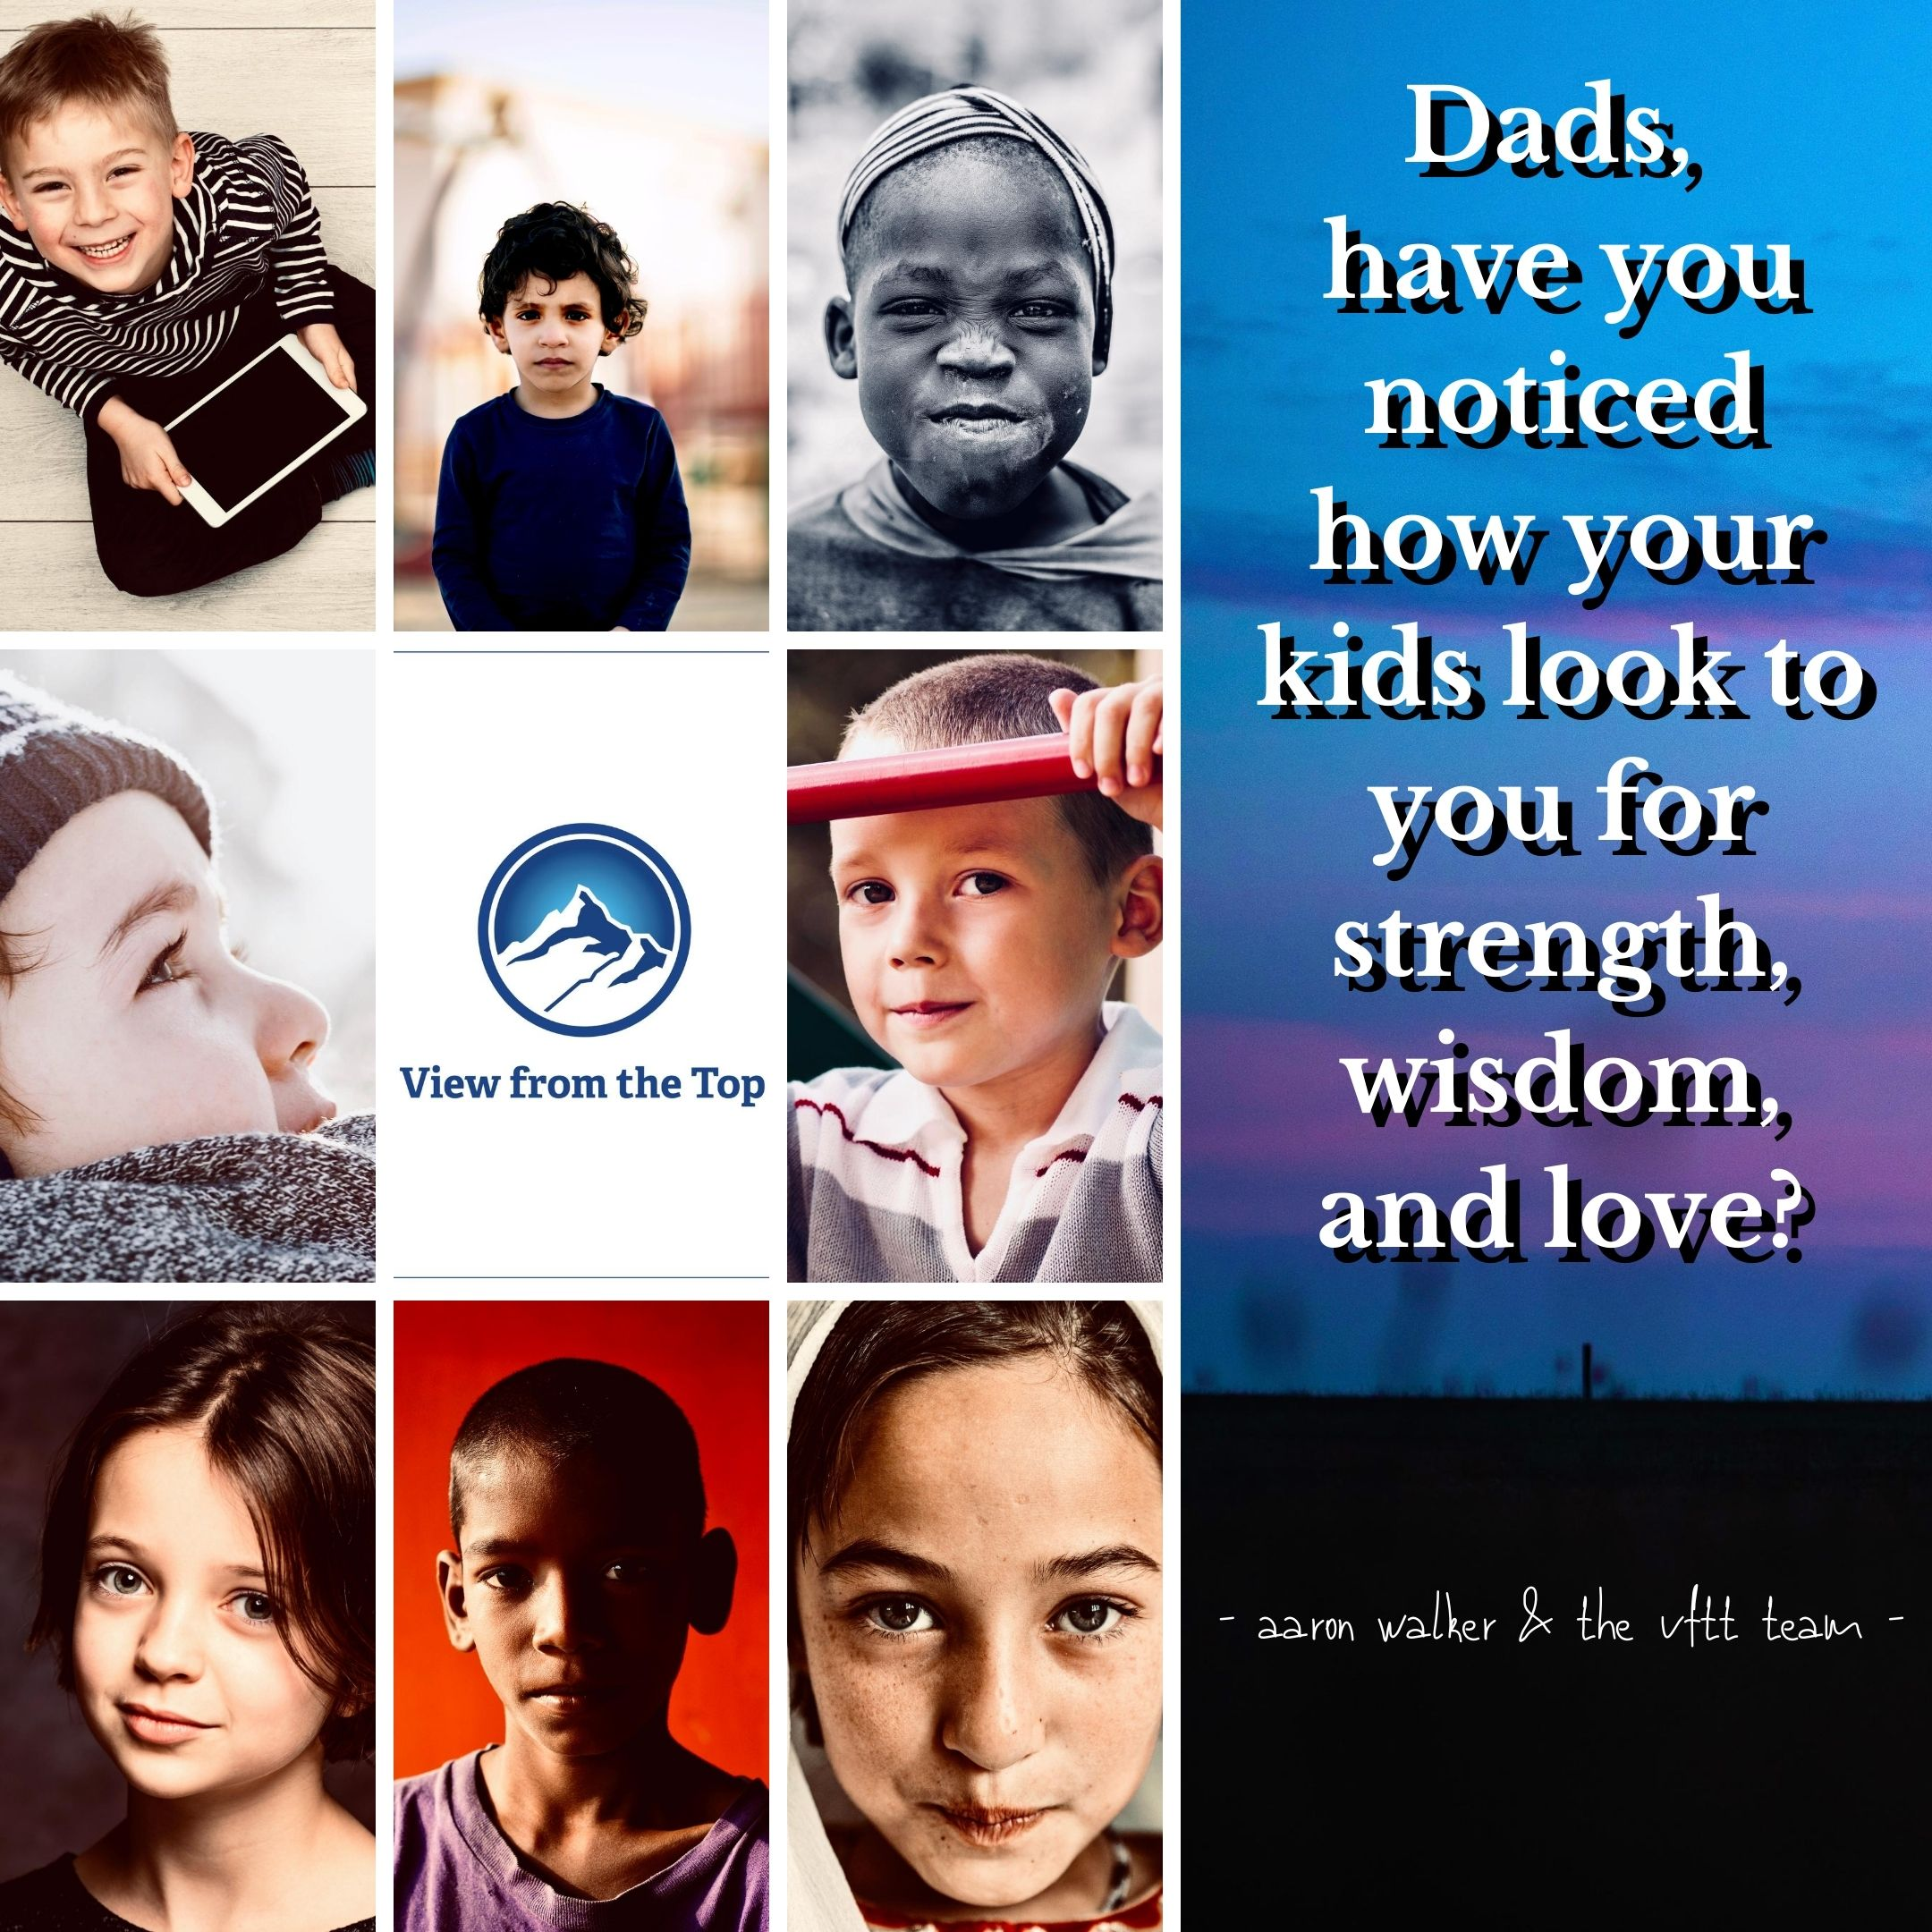 Dads, have you noticed how your kids look to you for strength, wisdom, and love_